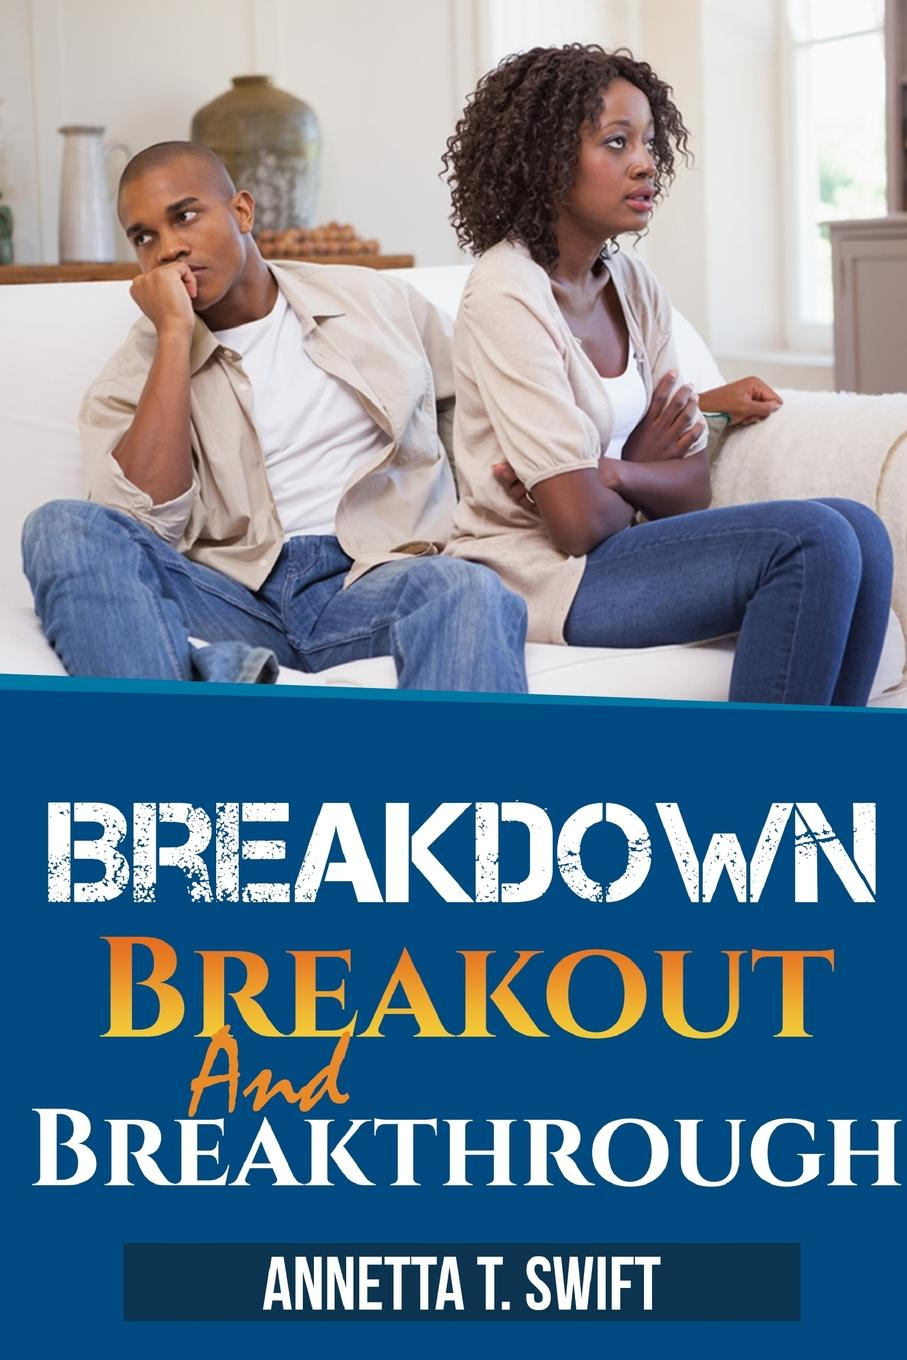 Annetta Swift Breakdown, Breakout and Breakthrough